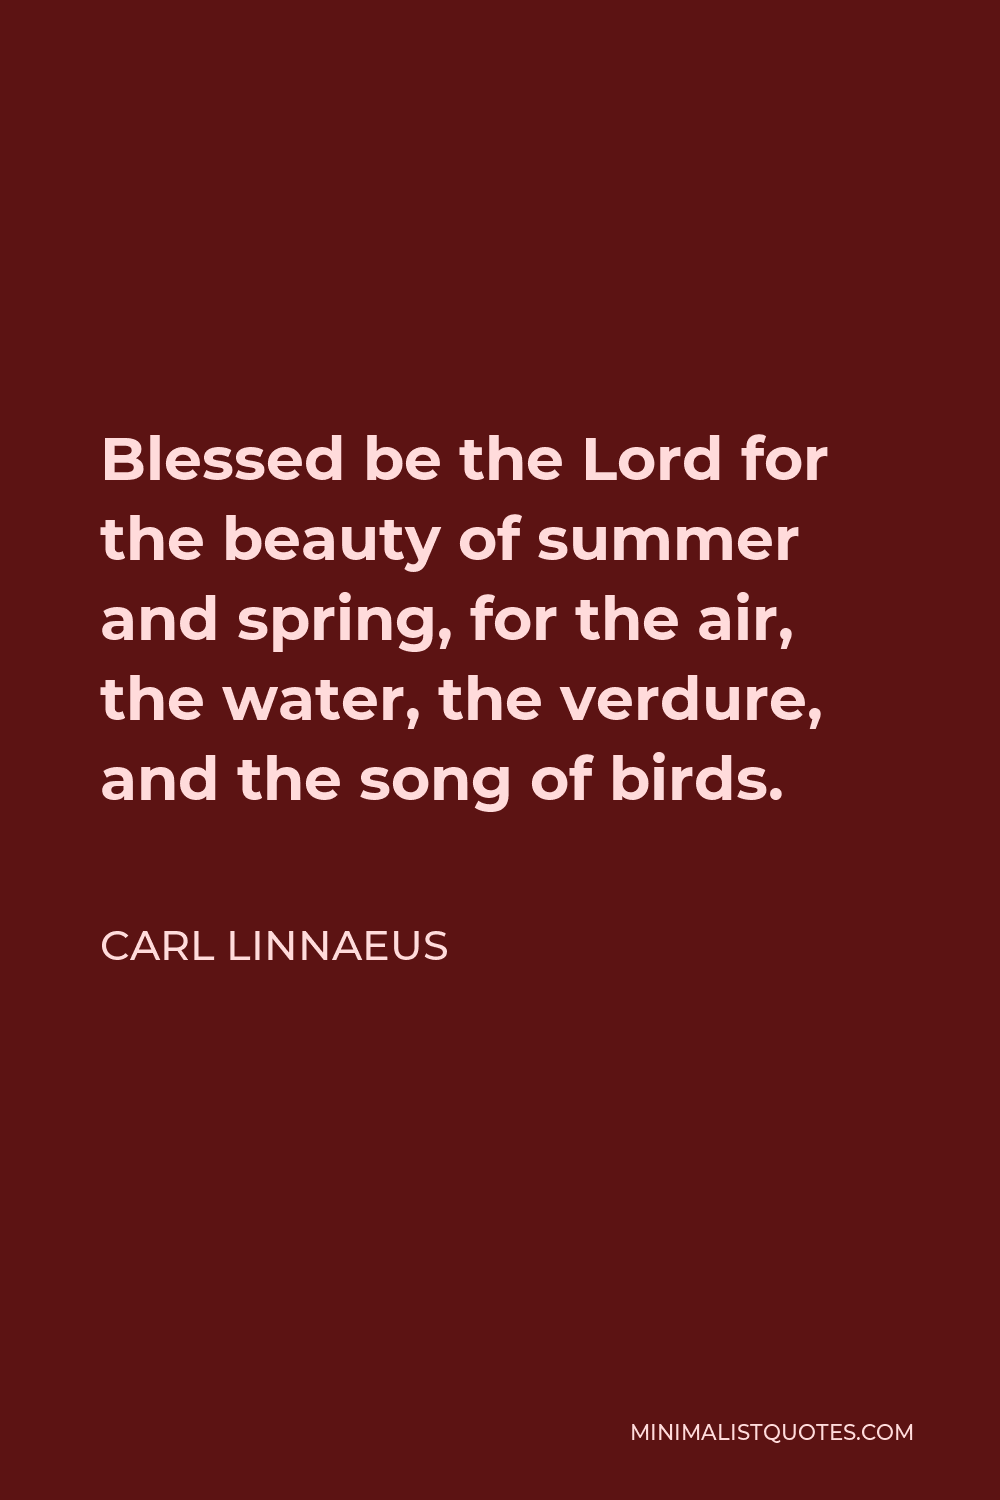 Carl Linnaeus Quote - Blessed be the Lord for the beauty of summer and spring, for the air, the water, the verdure, and the song of birds.